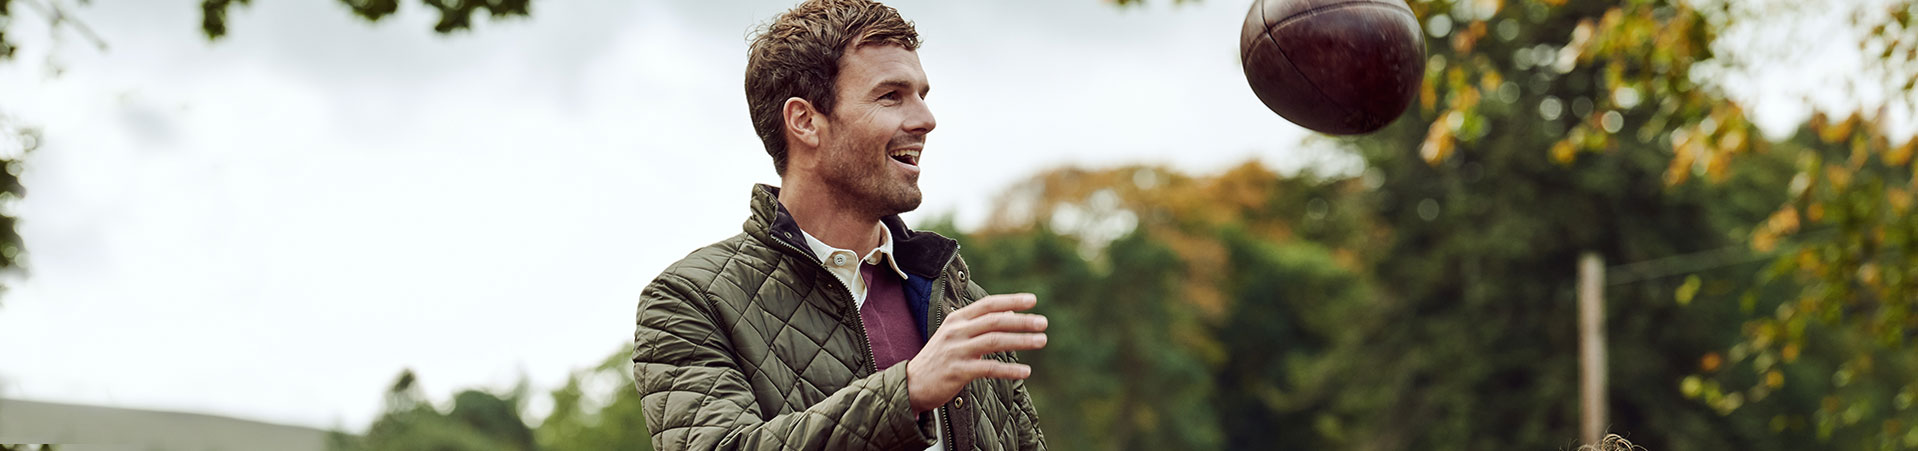 The Barbour Rugby Collection styled on model